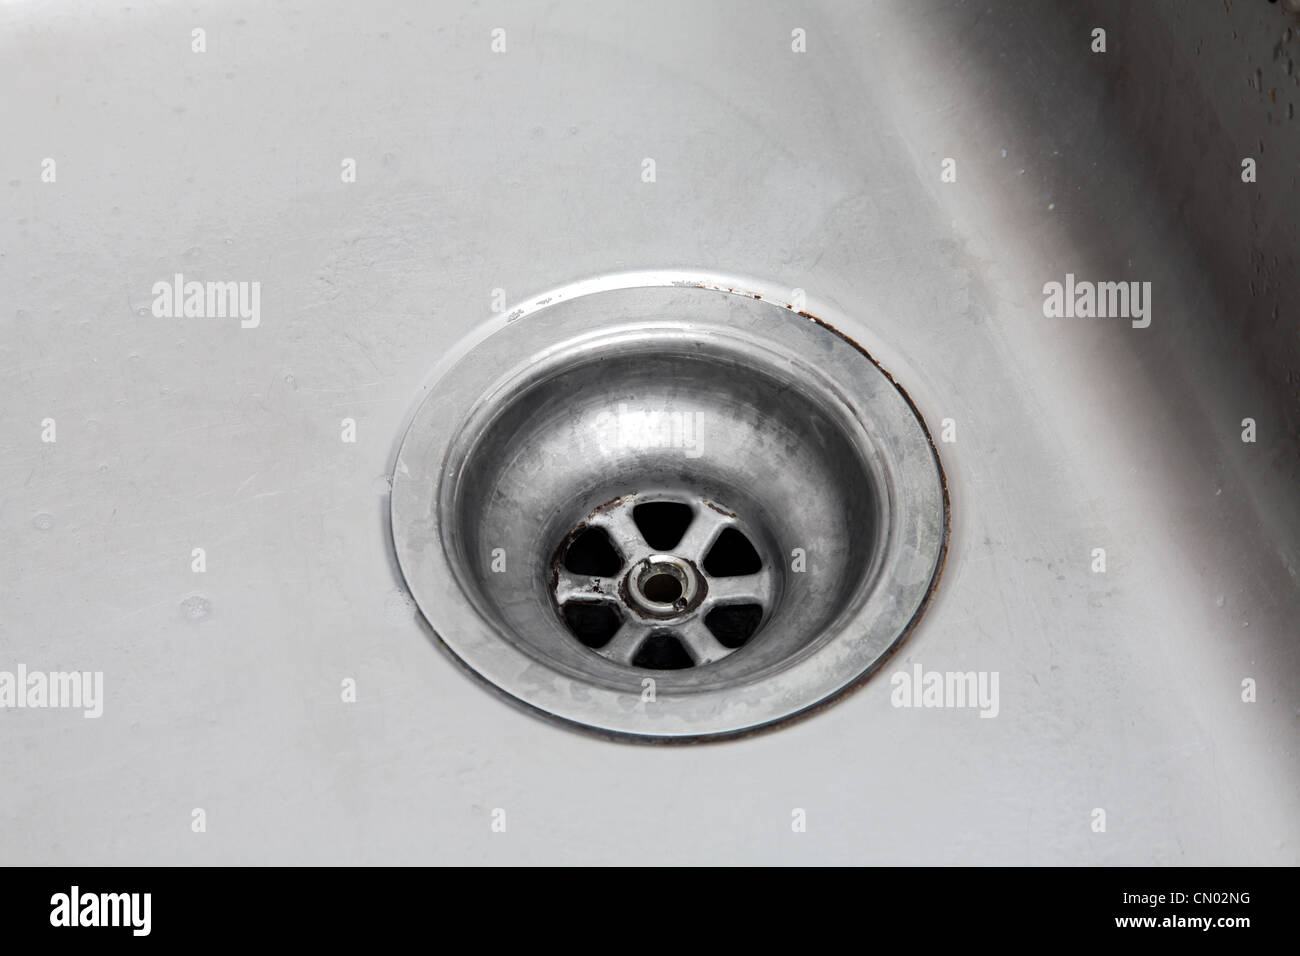 Plughole of a kitchen sink. - Stock Image